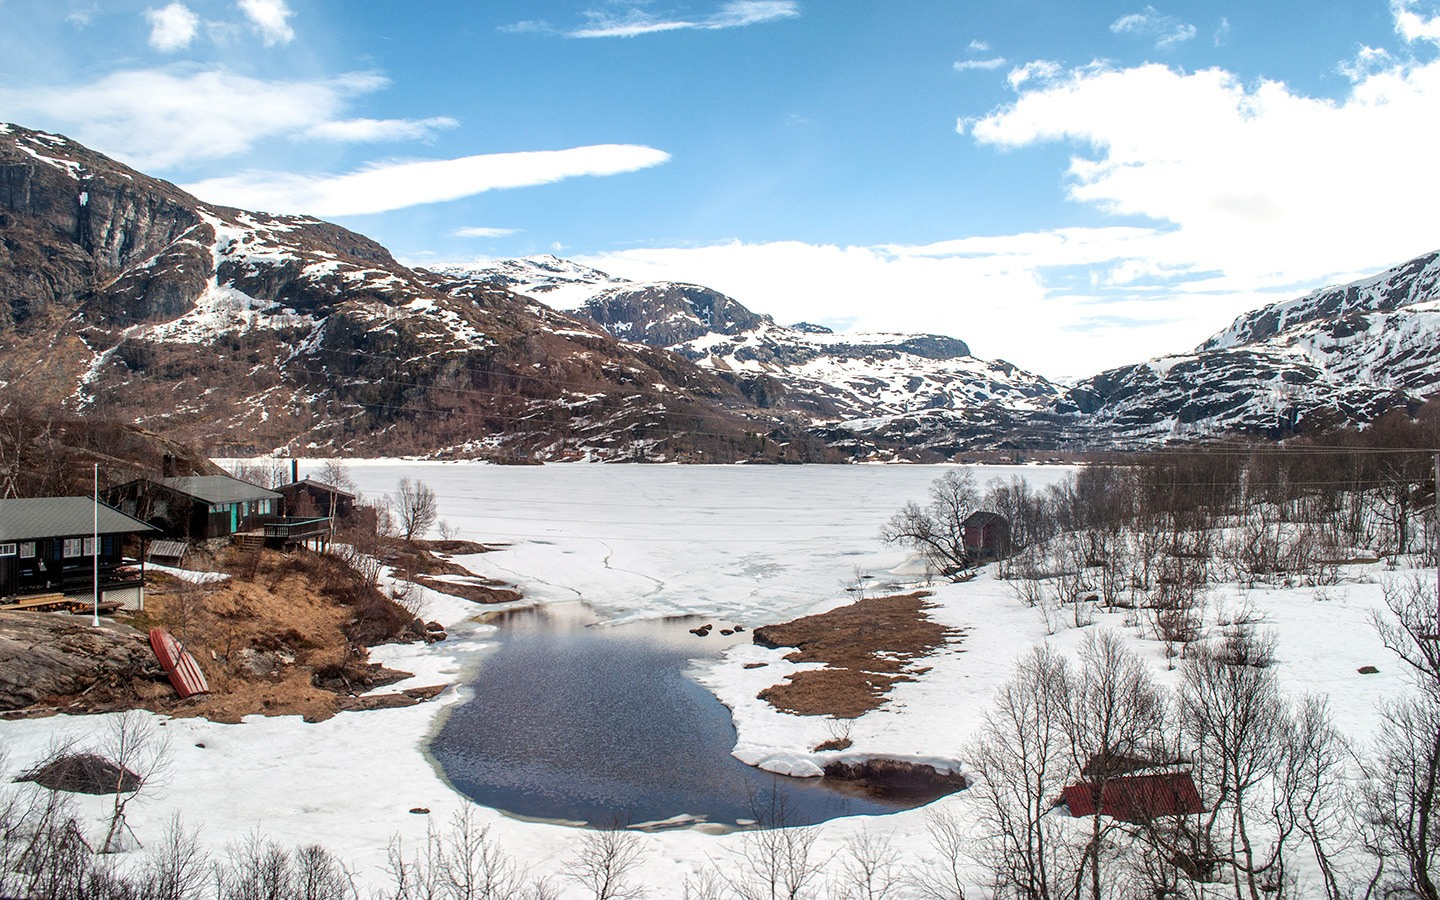 The Reinungvatnet mountain lake in fjord Norway